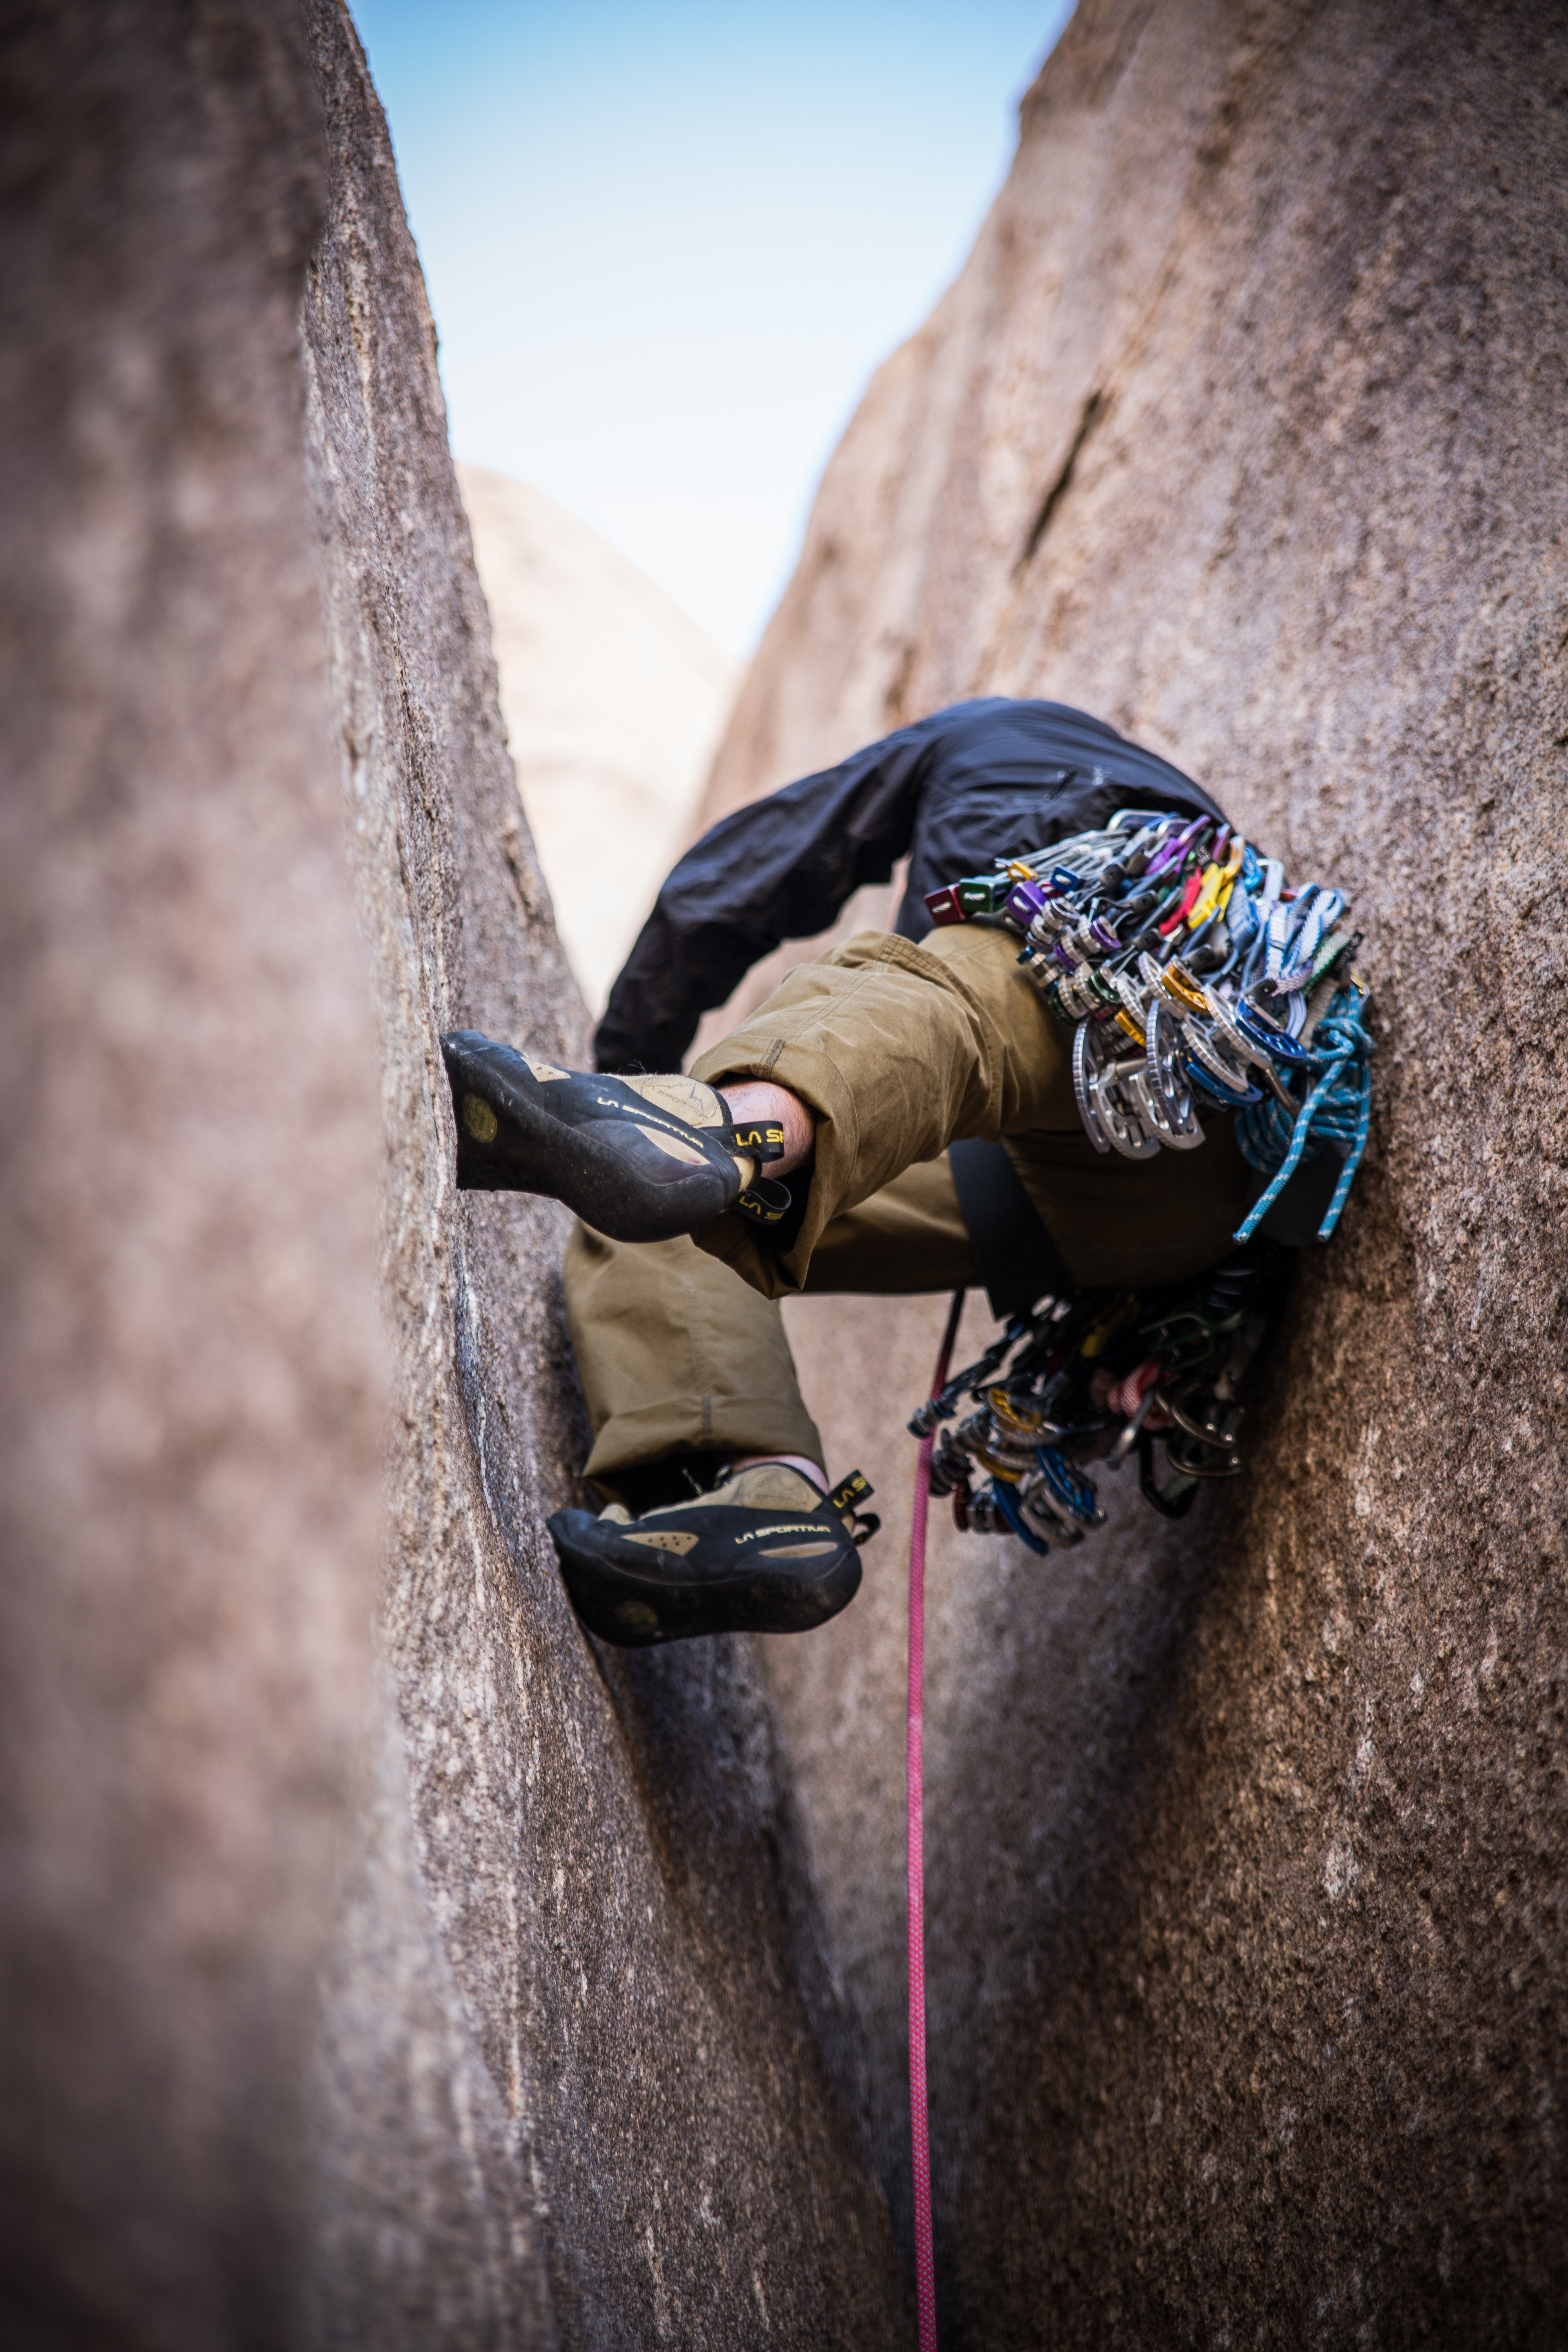 Great travel destinations for climbing